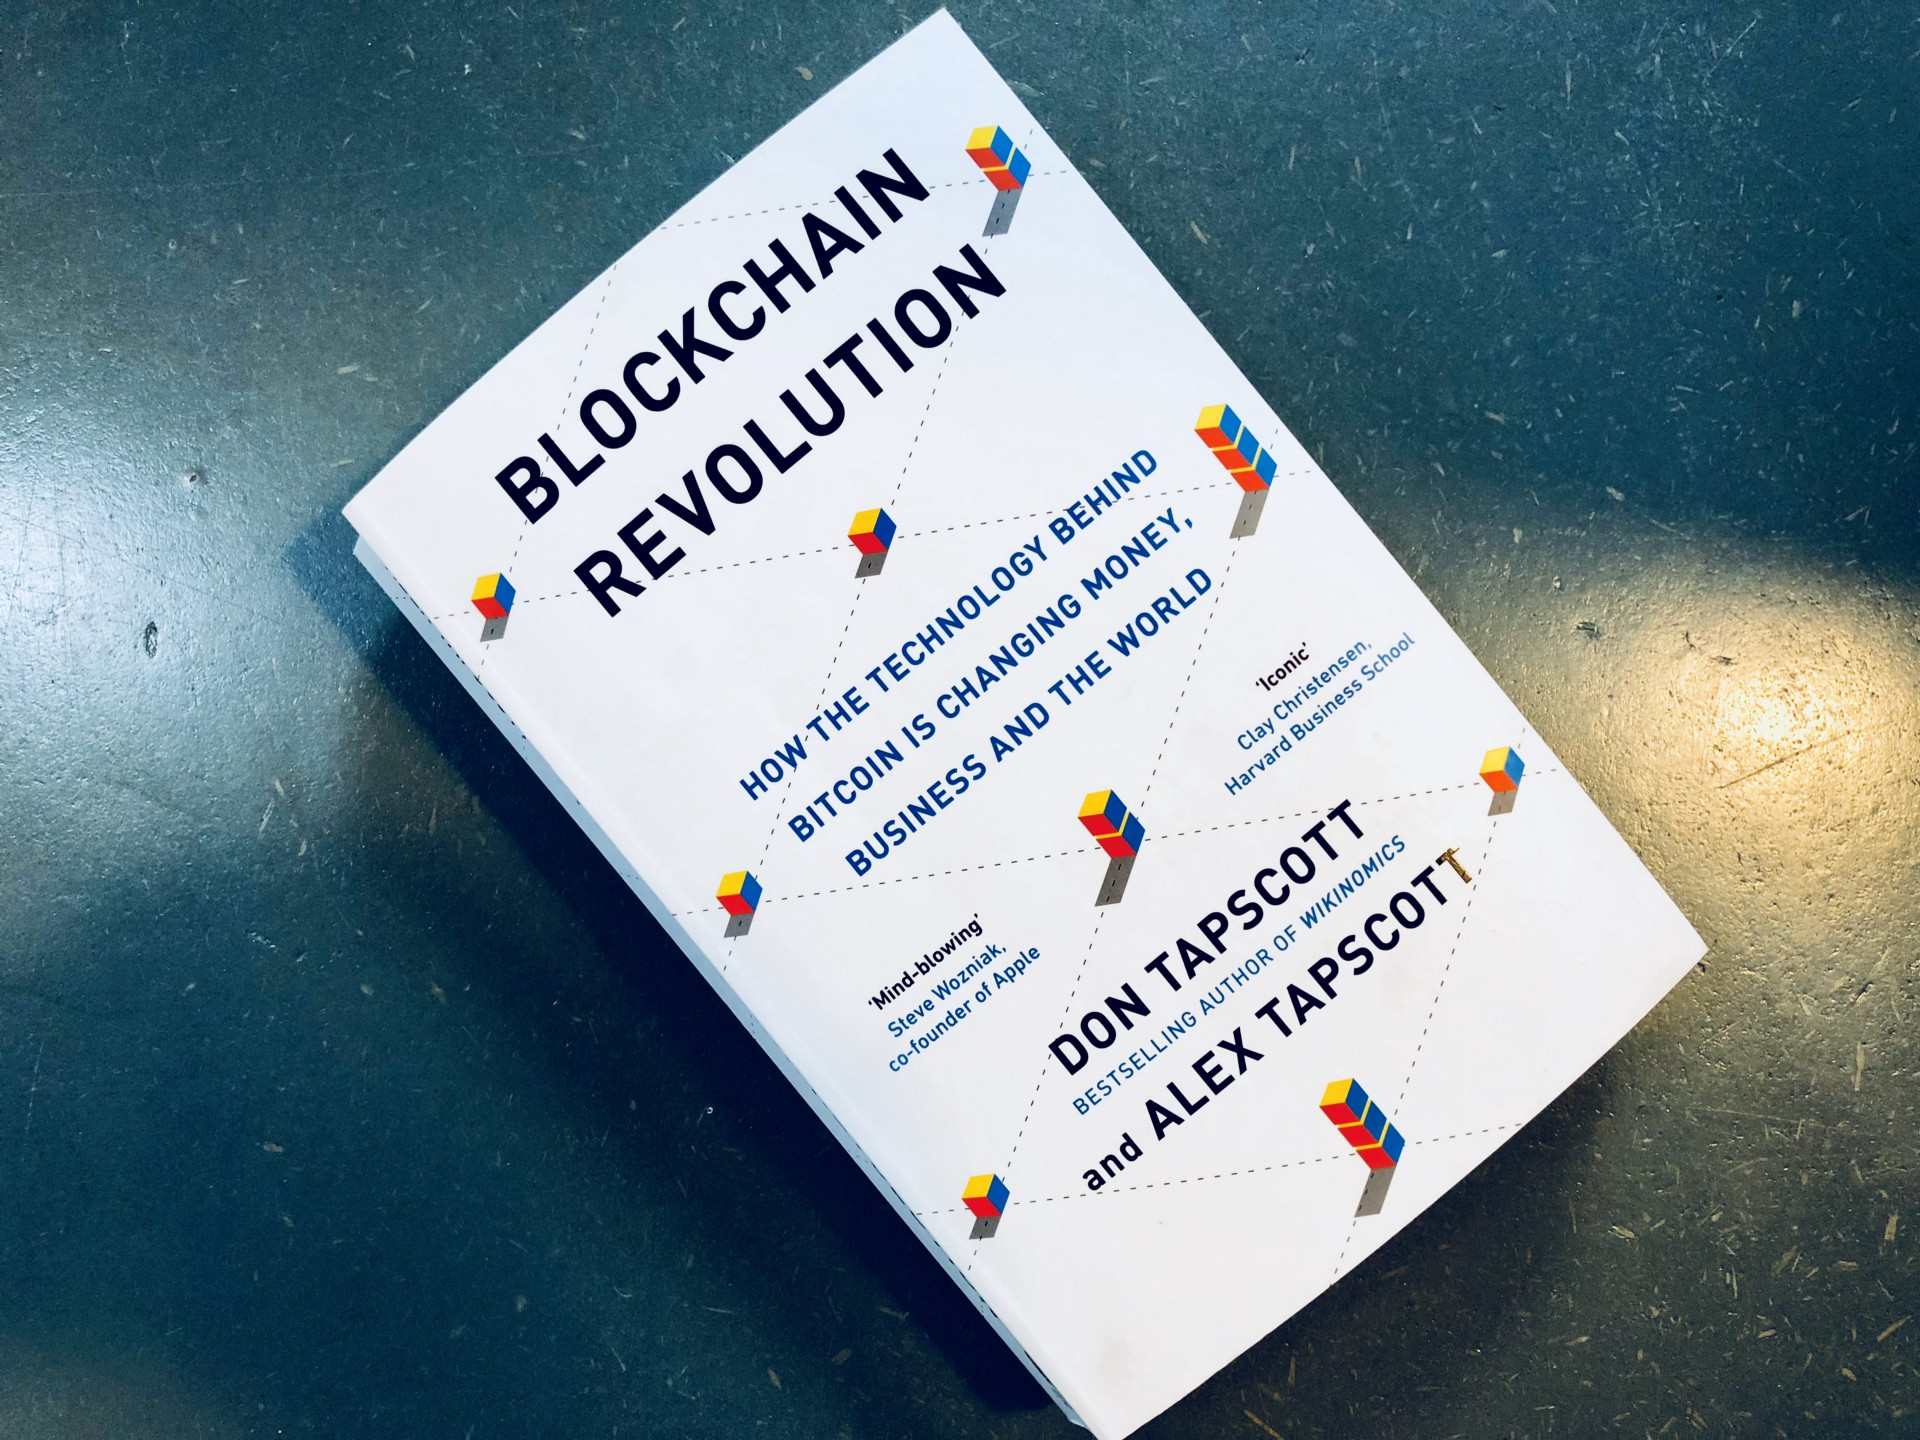 A few thoughts on \'Blockchain Revolution\' by Don and Alex Tapscott